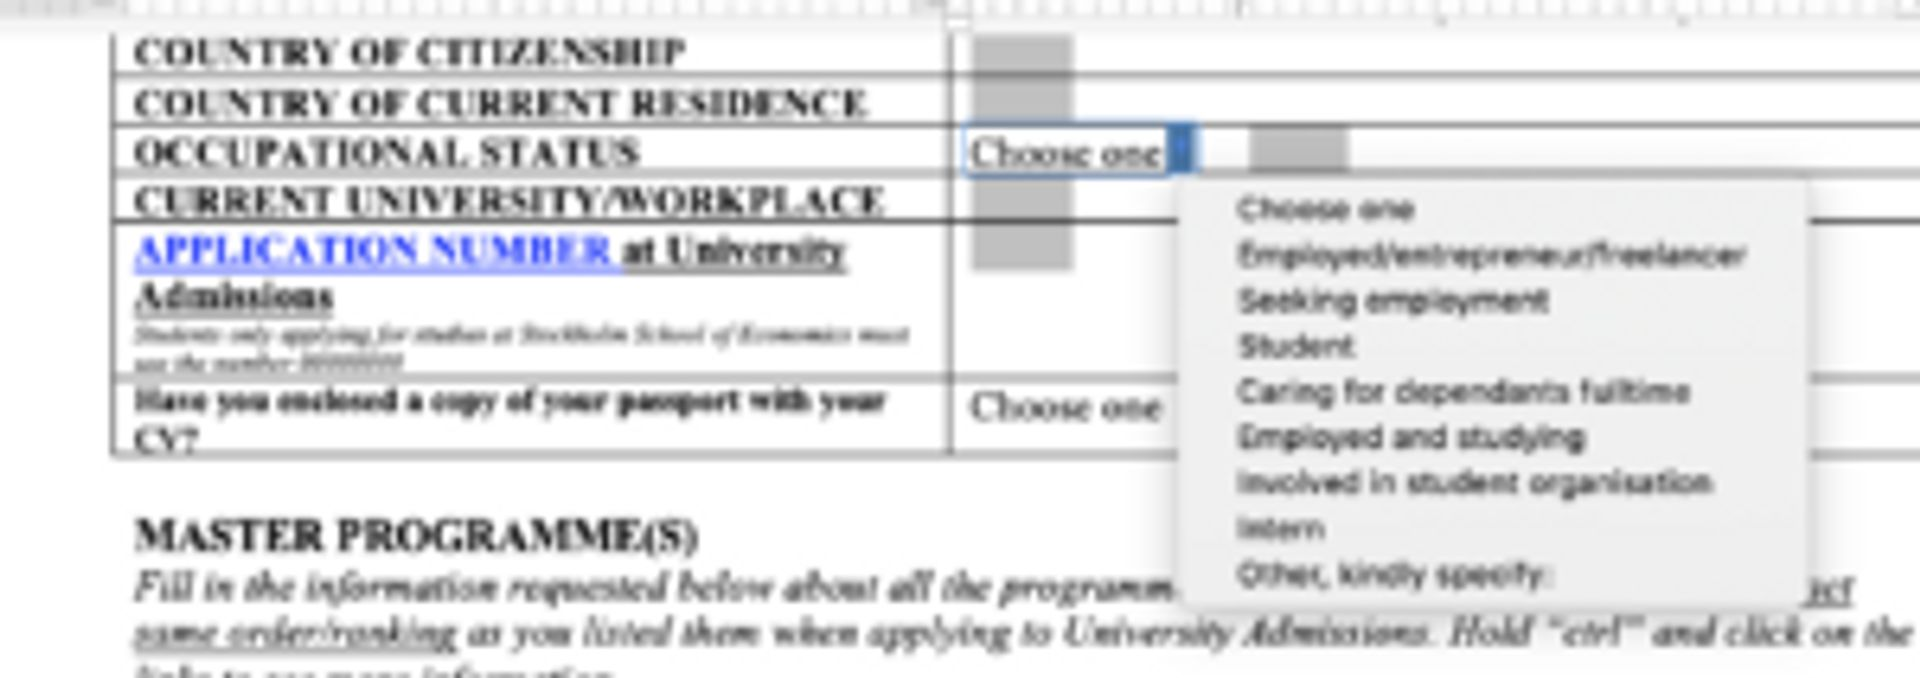 Screenshot of motivation letter form showing different options to fill out.